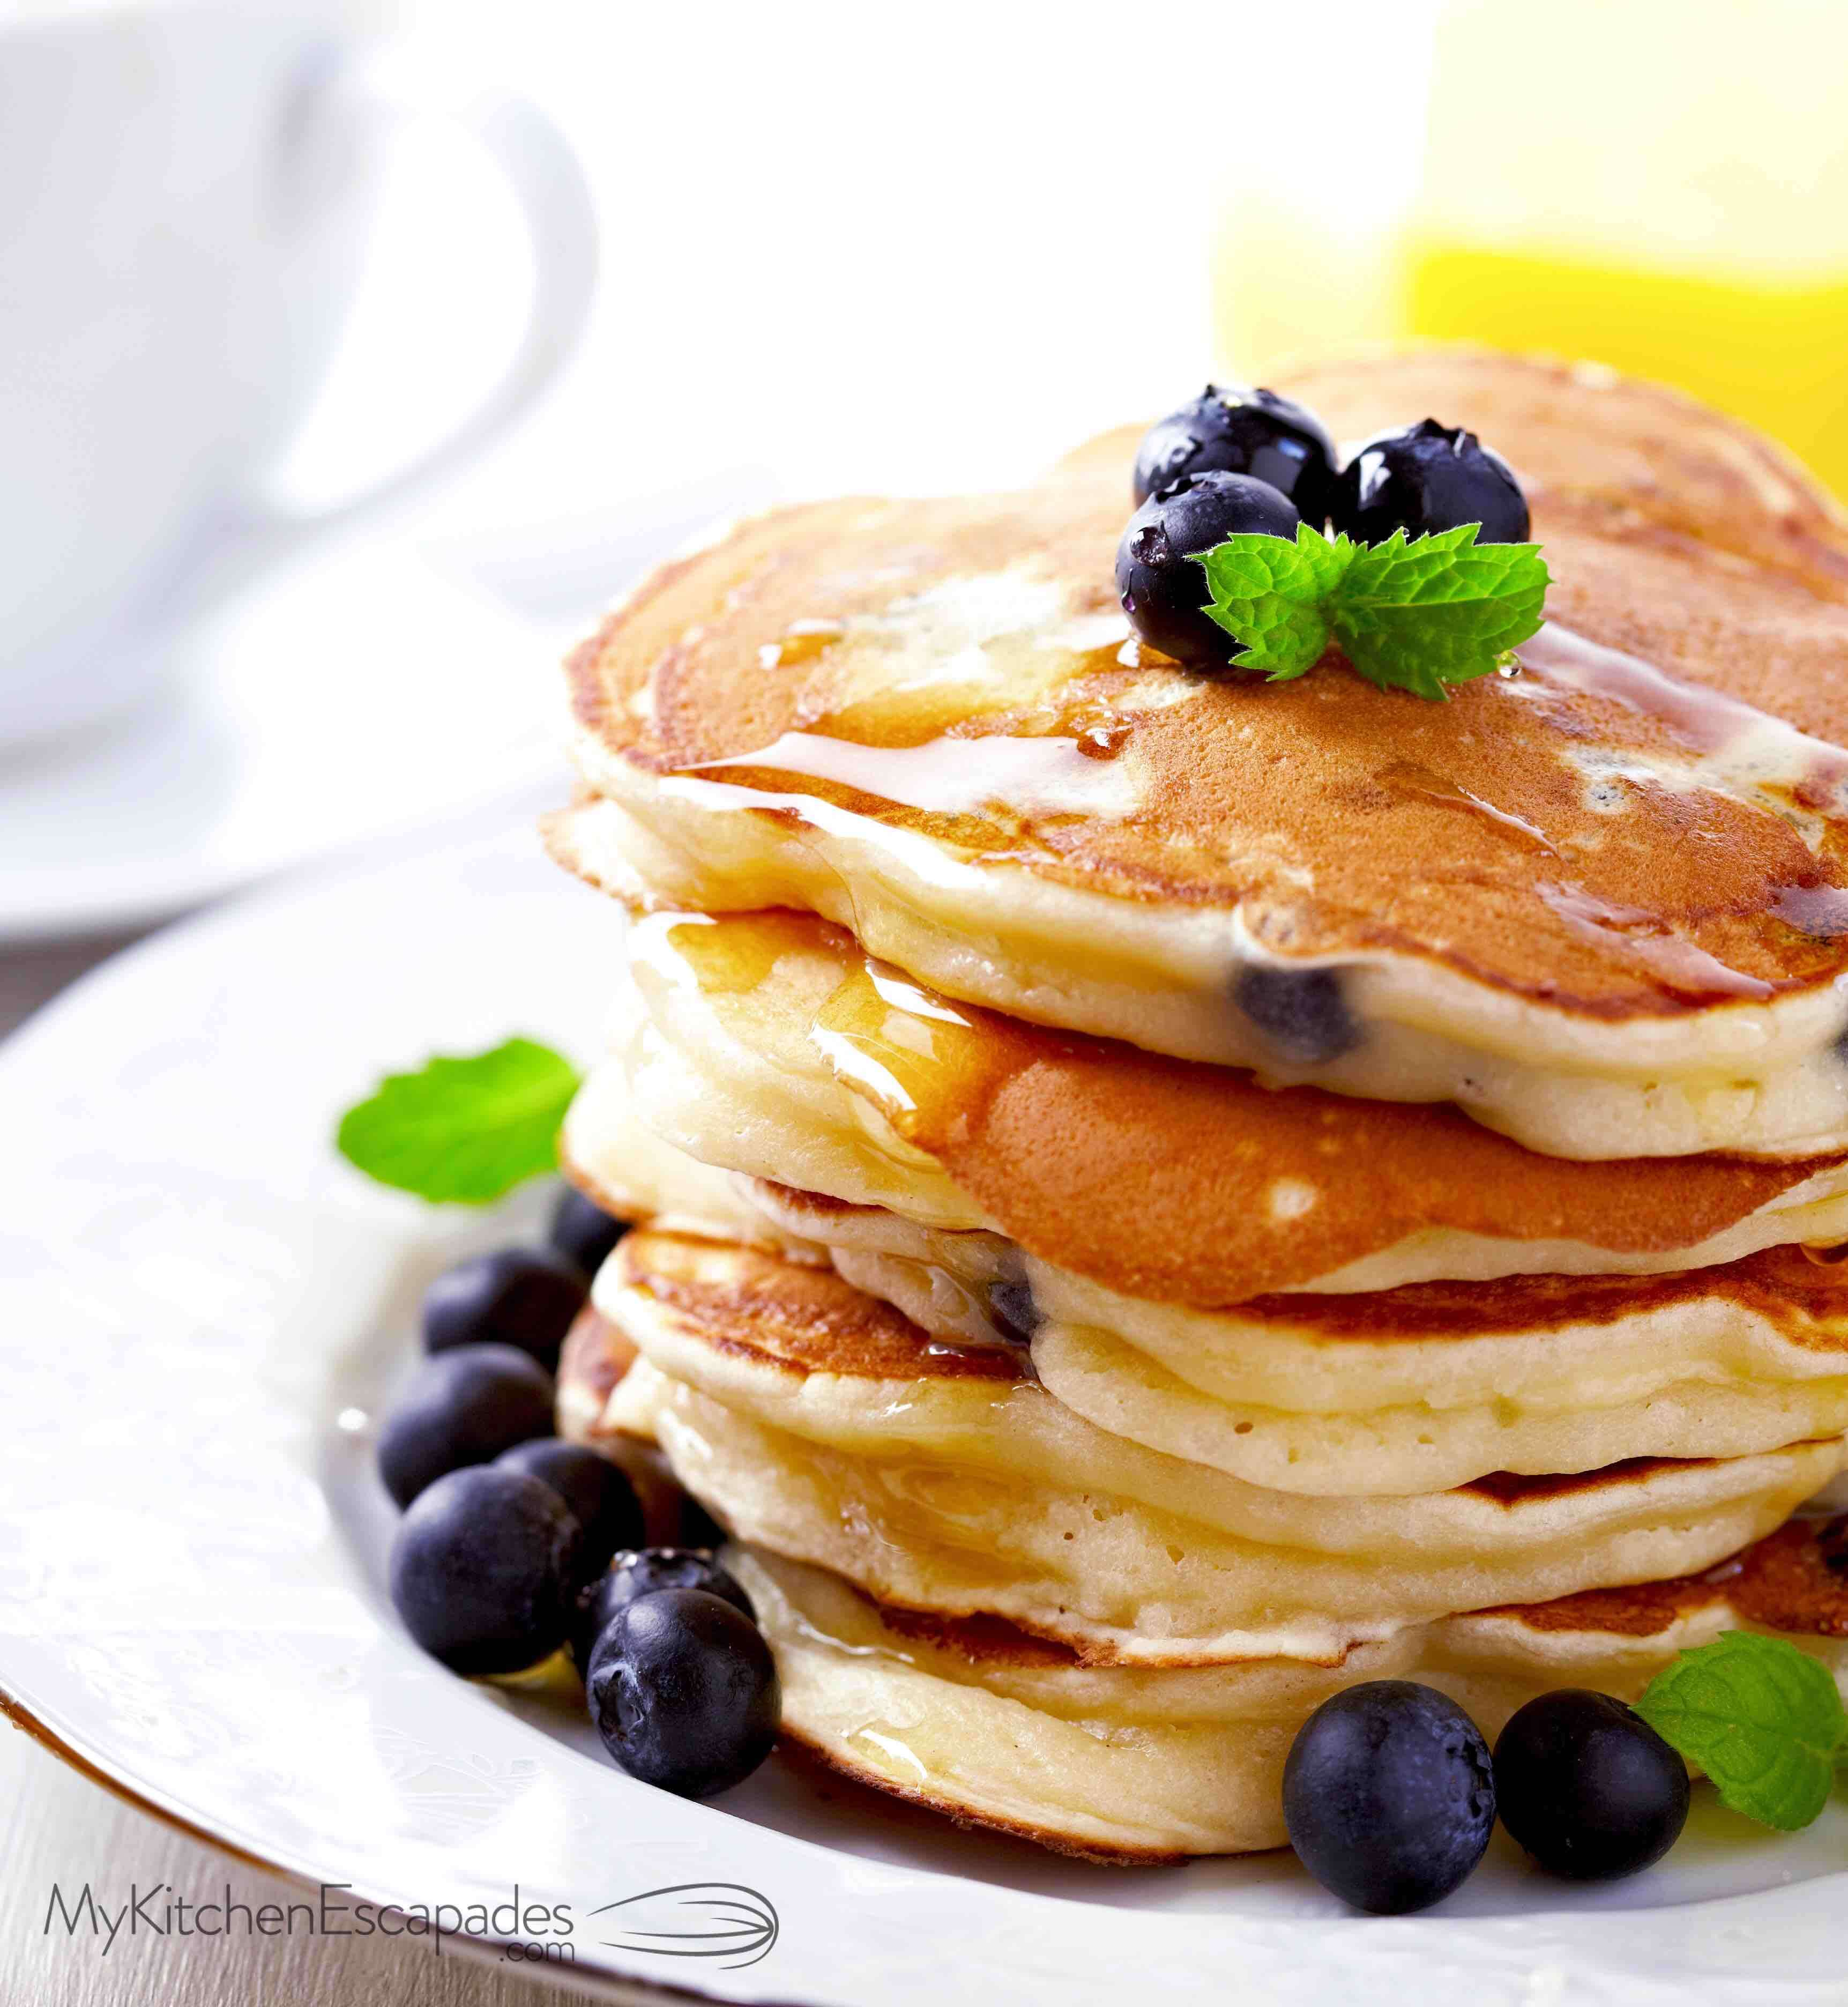 How To Make Pancakes From Scratch A Delicious Easy And Homemade Recipe